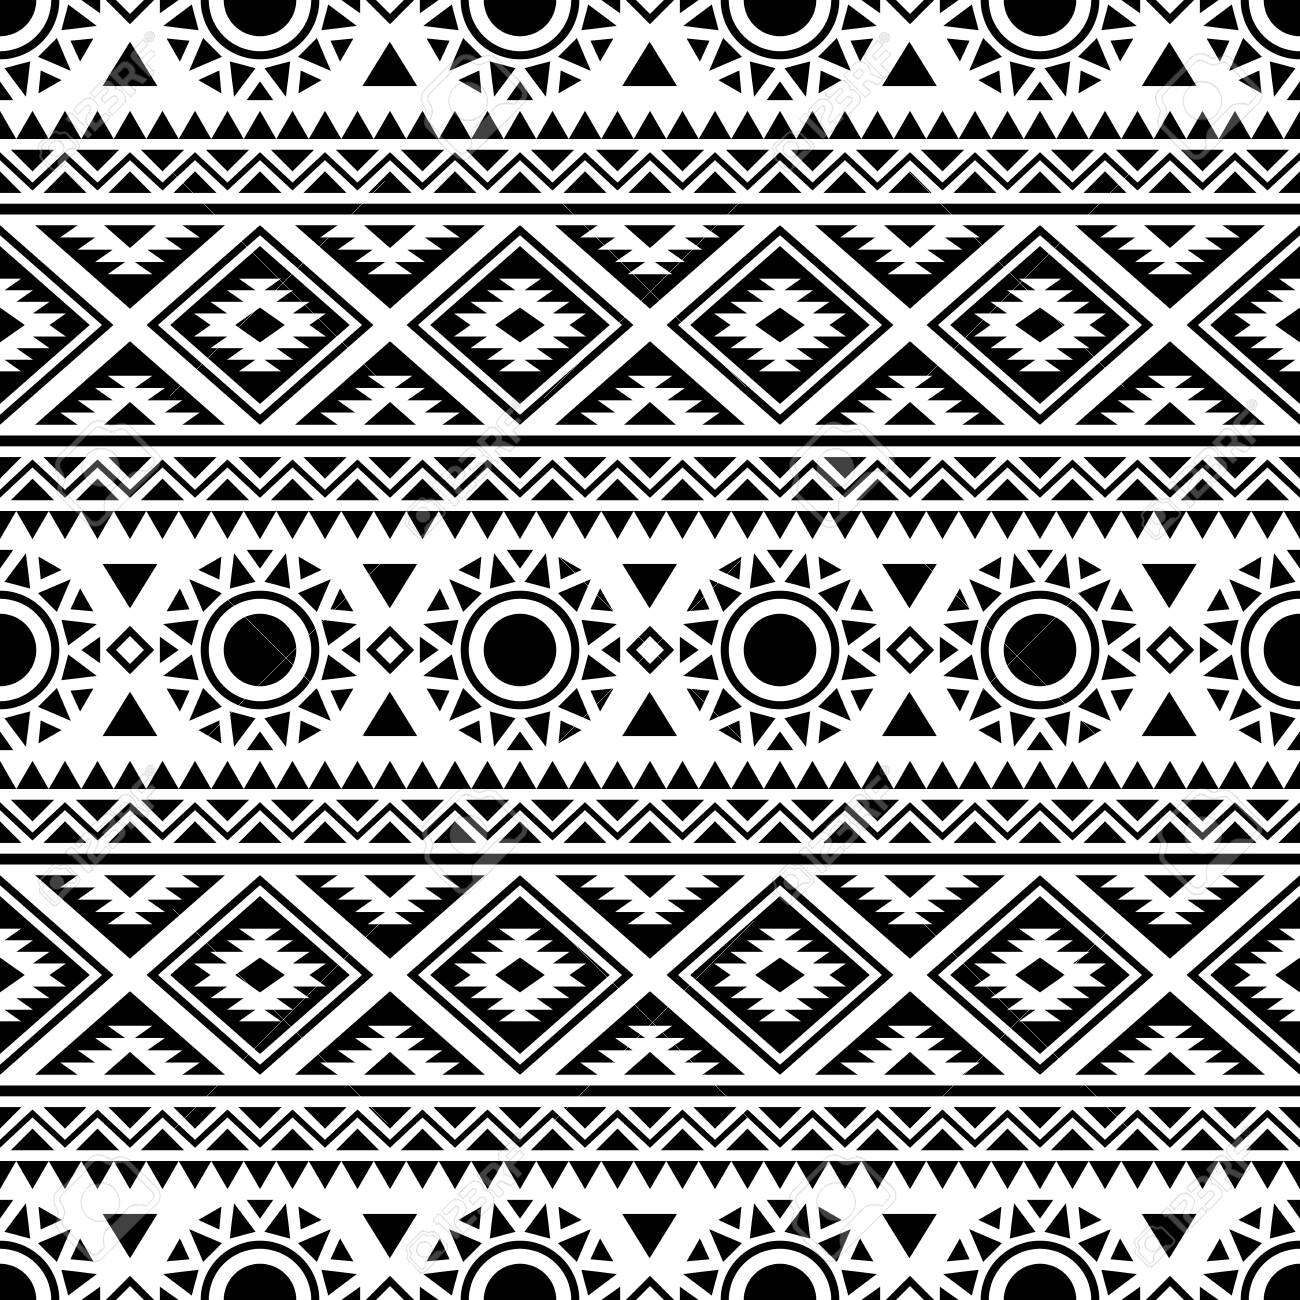 Seamless ethnic pattern. Traditional tribal pattern in black and white color - 141465355